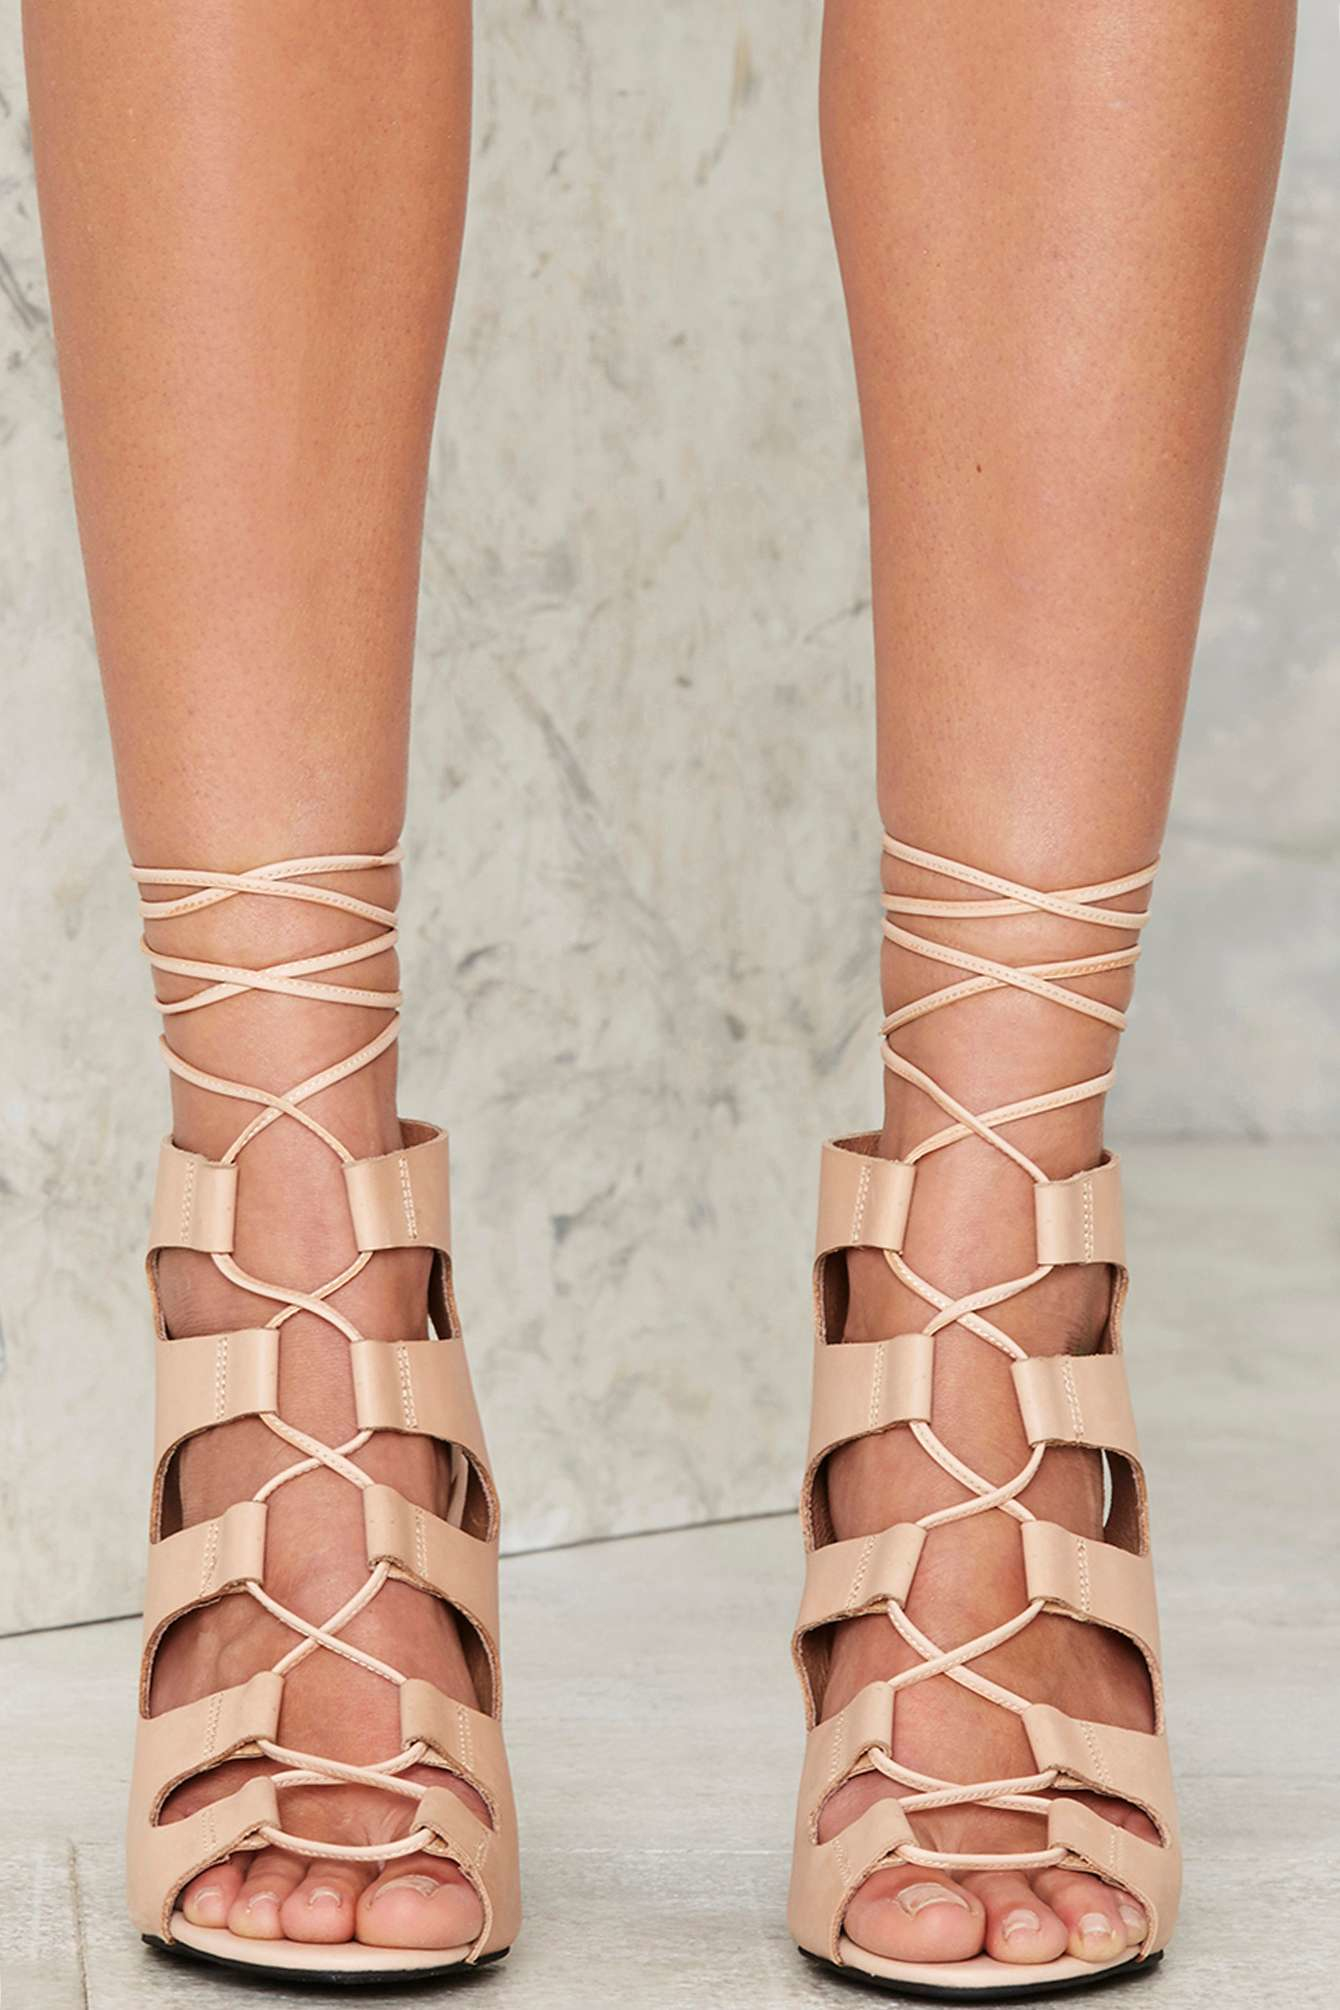 Lyst - Jeffrey campbell Be My Leather Lace-up Heels - Beige in Natural